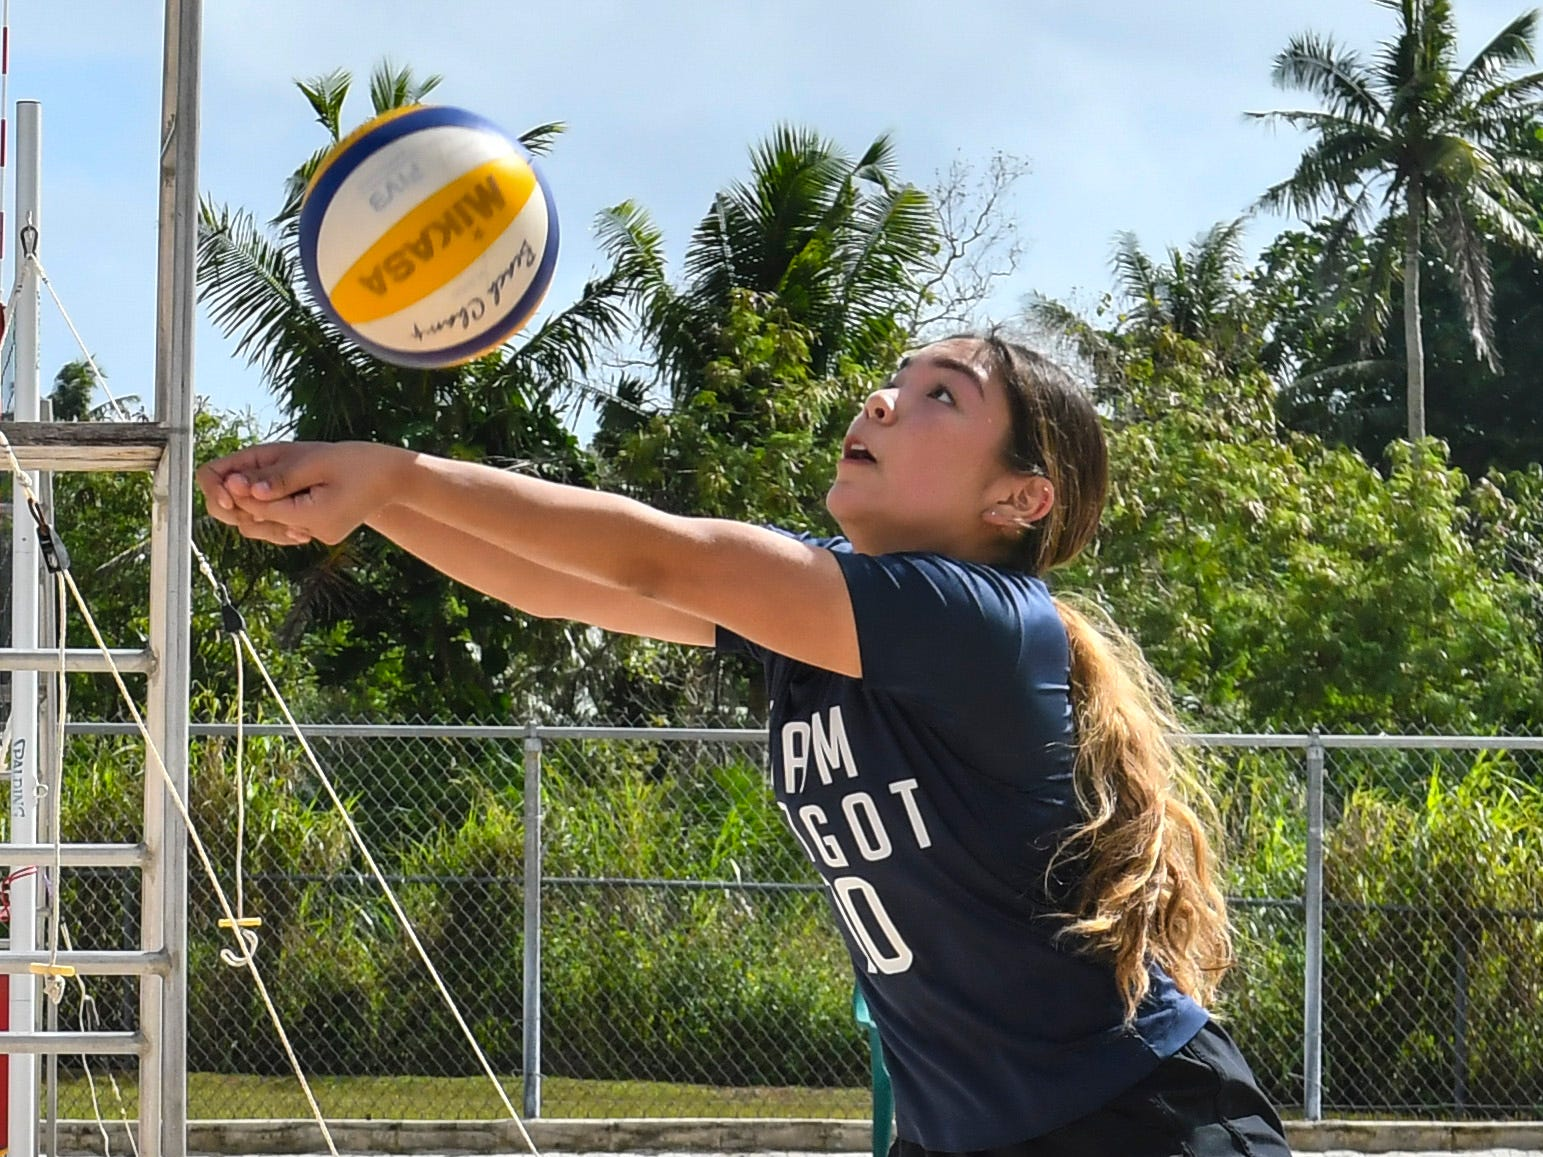 Harvest Christian Academy Eagles' Trinity Terlaje, returns a volley during an IIAAG beach volleyball game against St. John's Knights White team at the Guam Football Association National Training Center in Dededo on Saturday, Feb. 9, 2019.